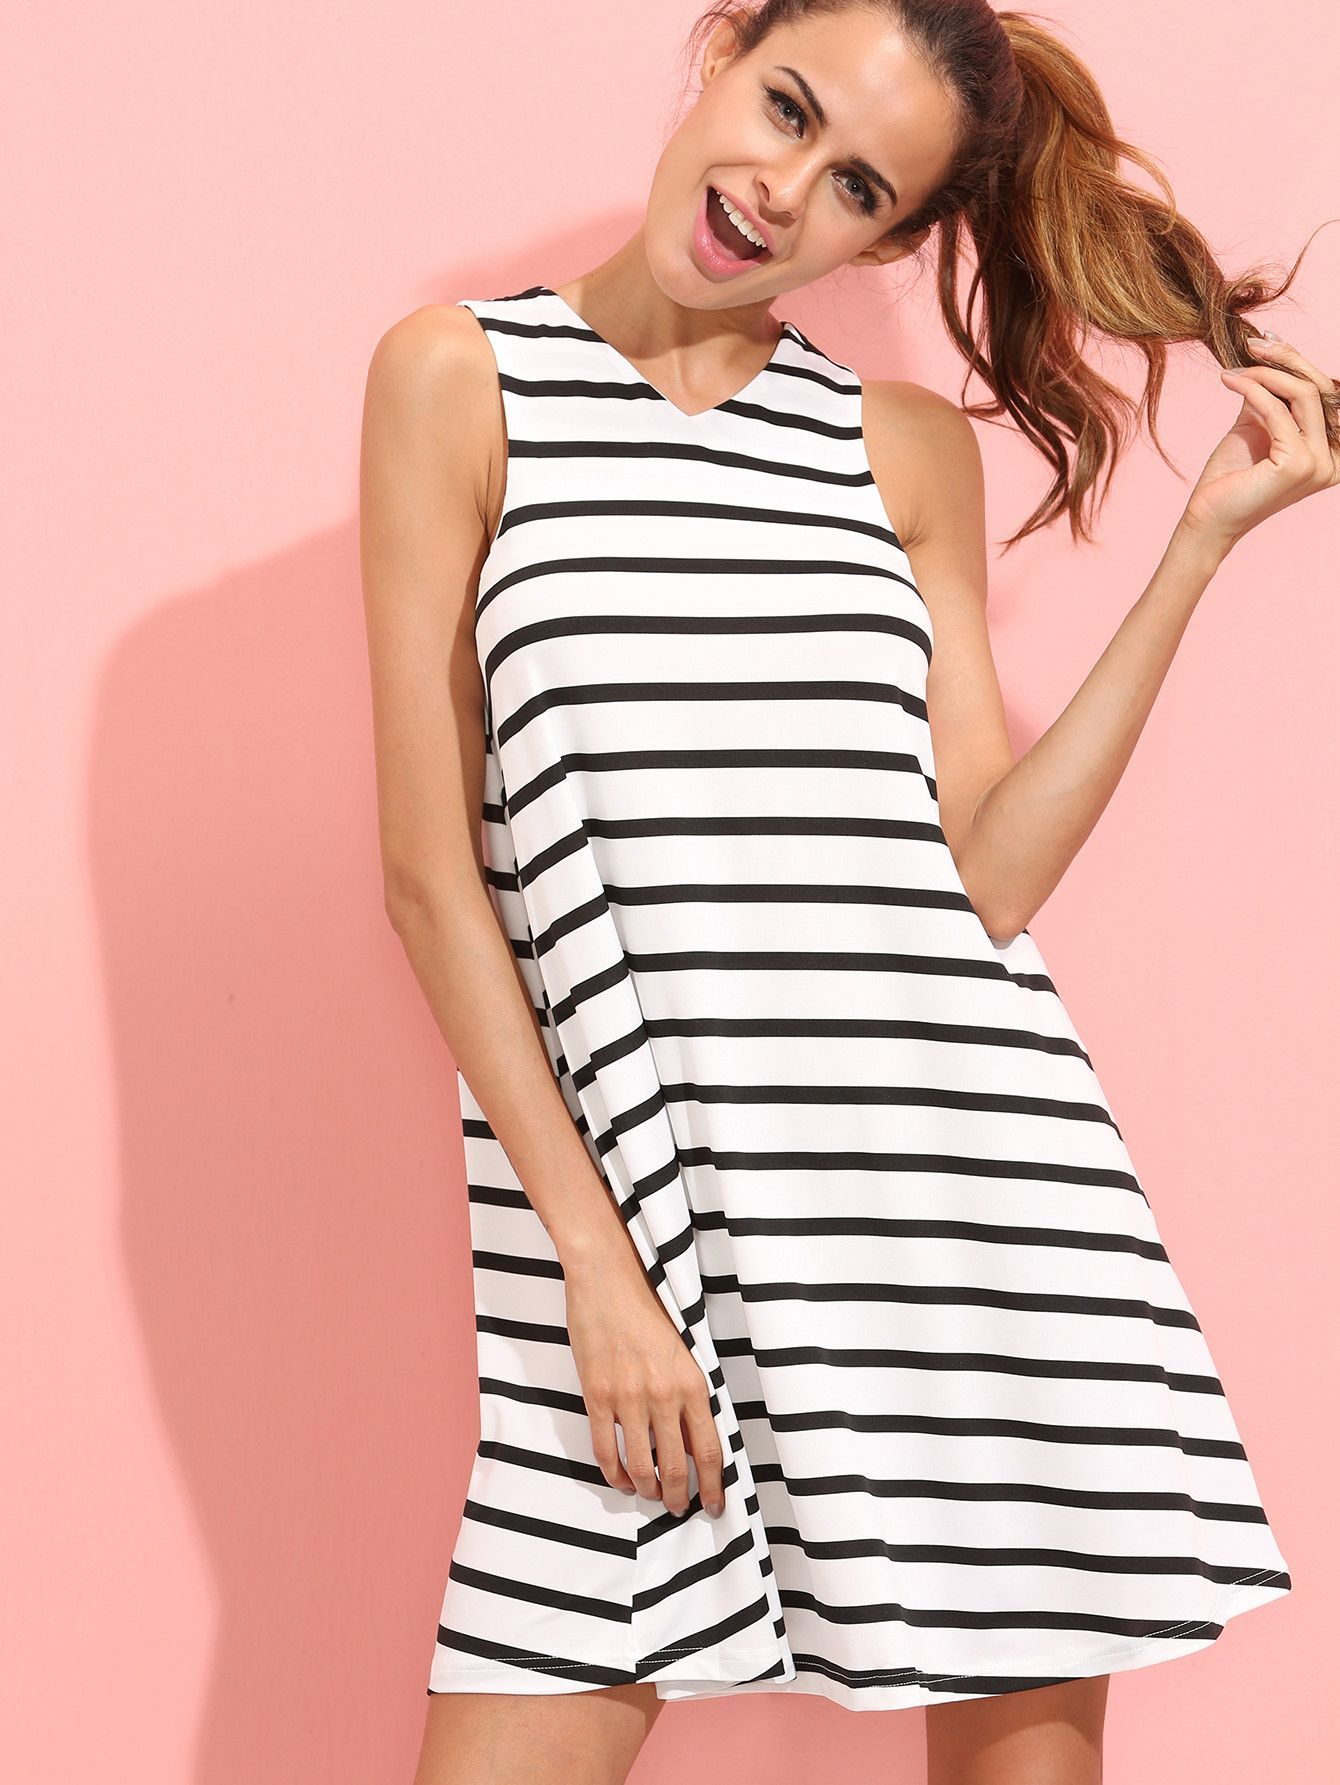 Fabric: Fabric has no stretch Season: Summer Type: Tunic Pattern Type: Striped Sleeve Length: Sleeveless Color: White Dresses Length: Short Style: Casual Material: Polyester Neckline: V Neck Silhouett